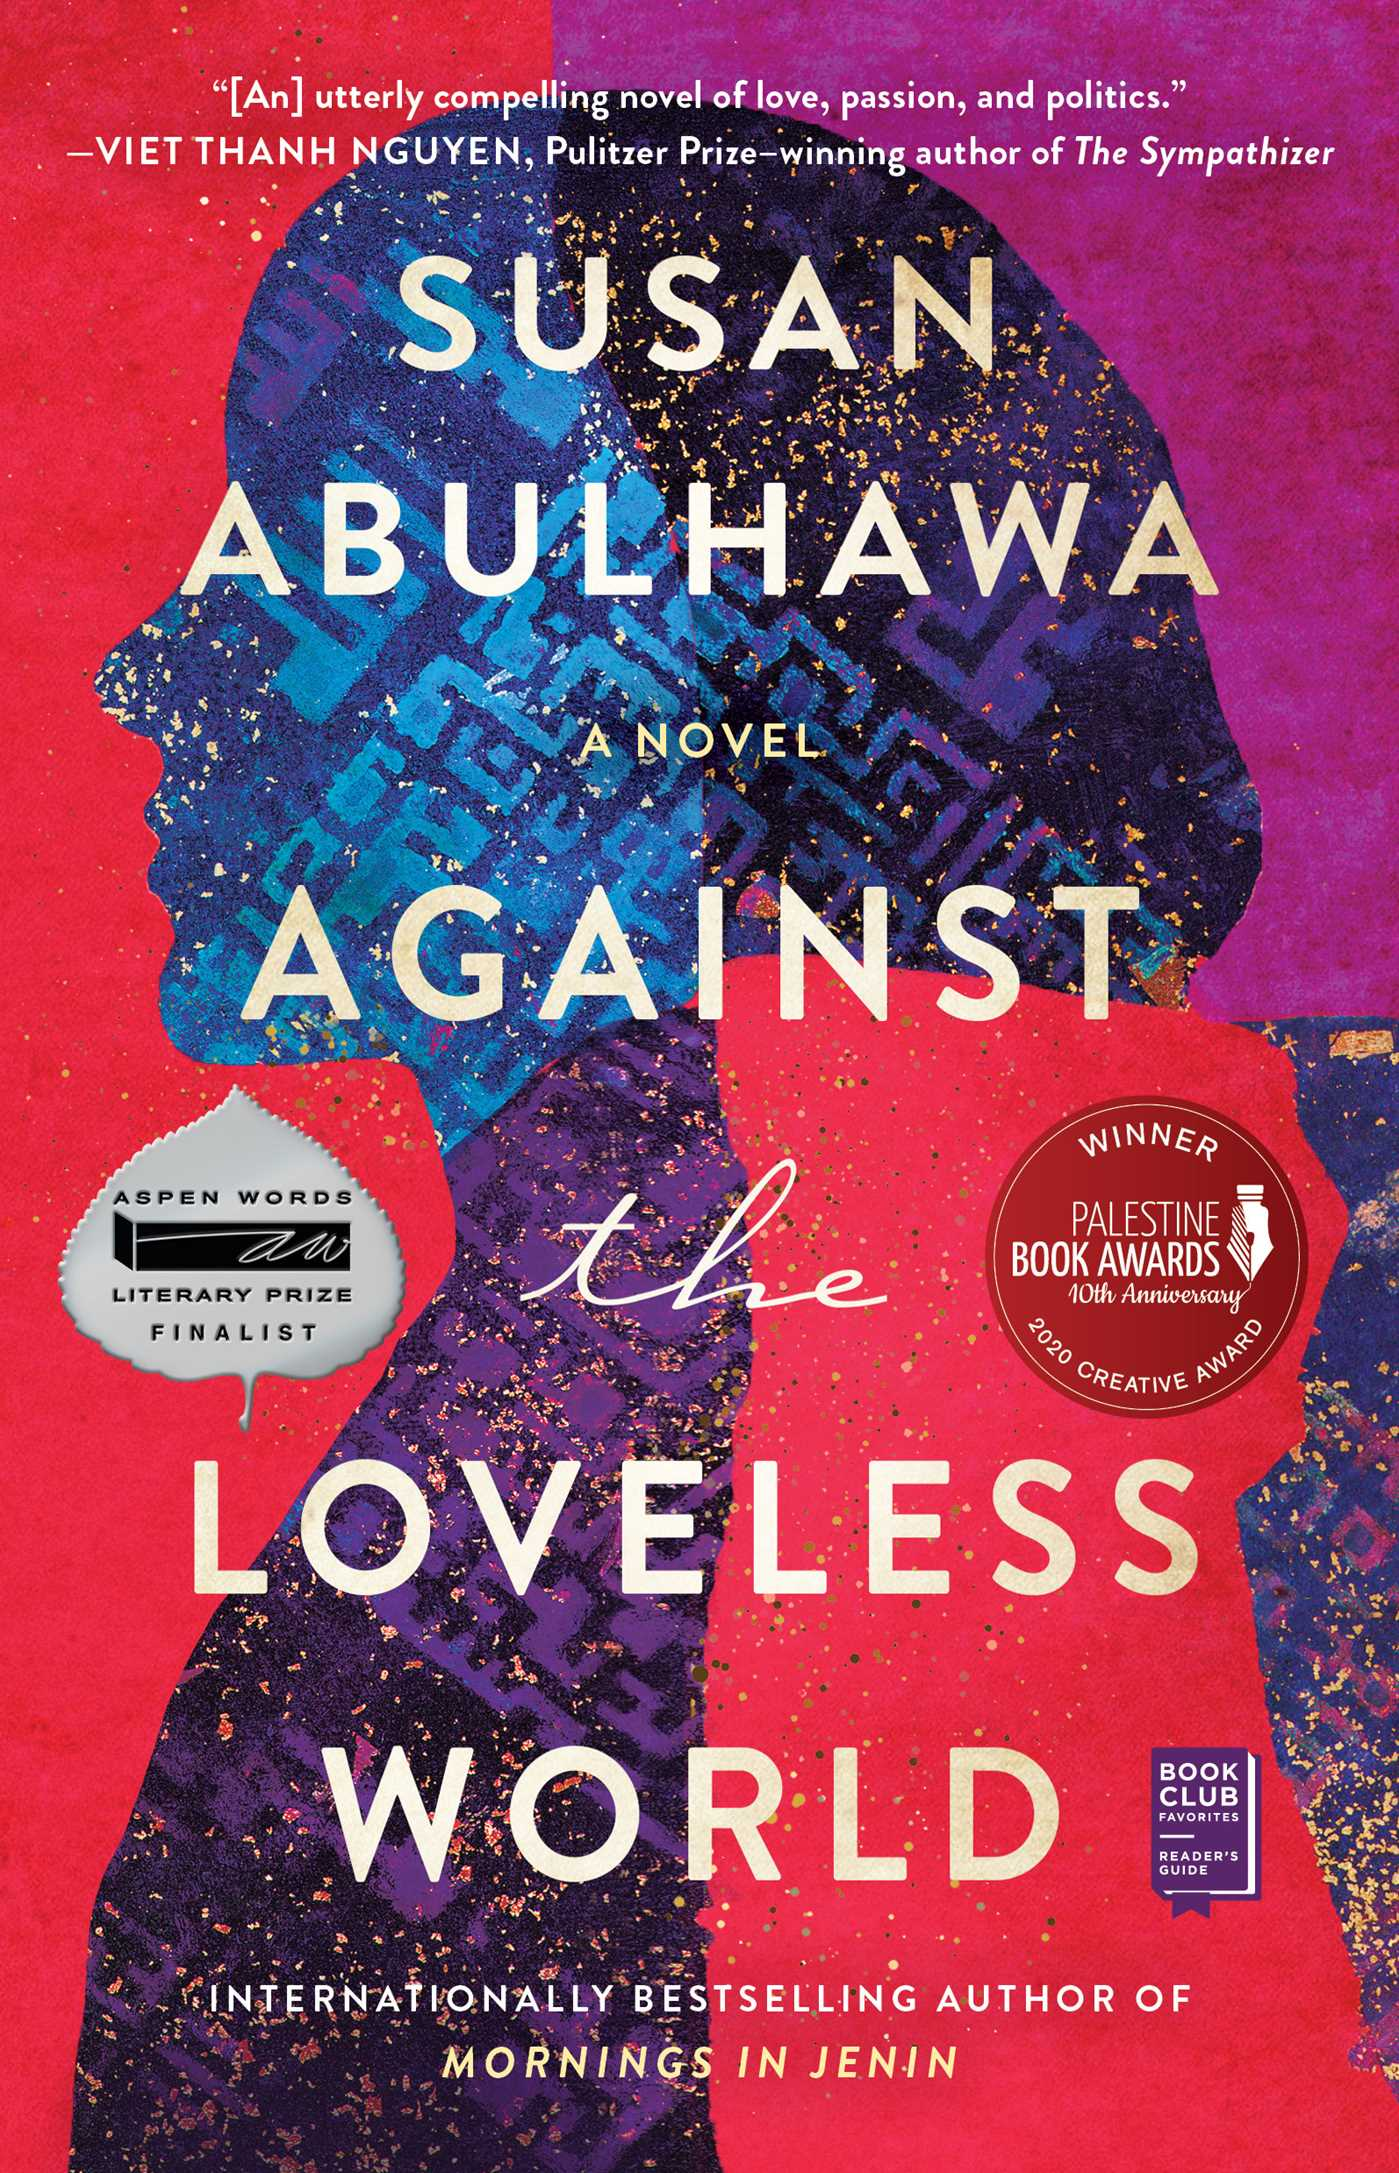 Against the Loveless World A Novel